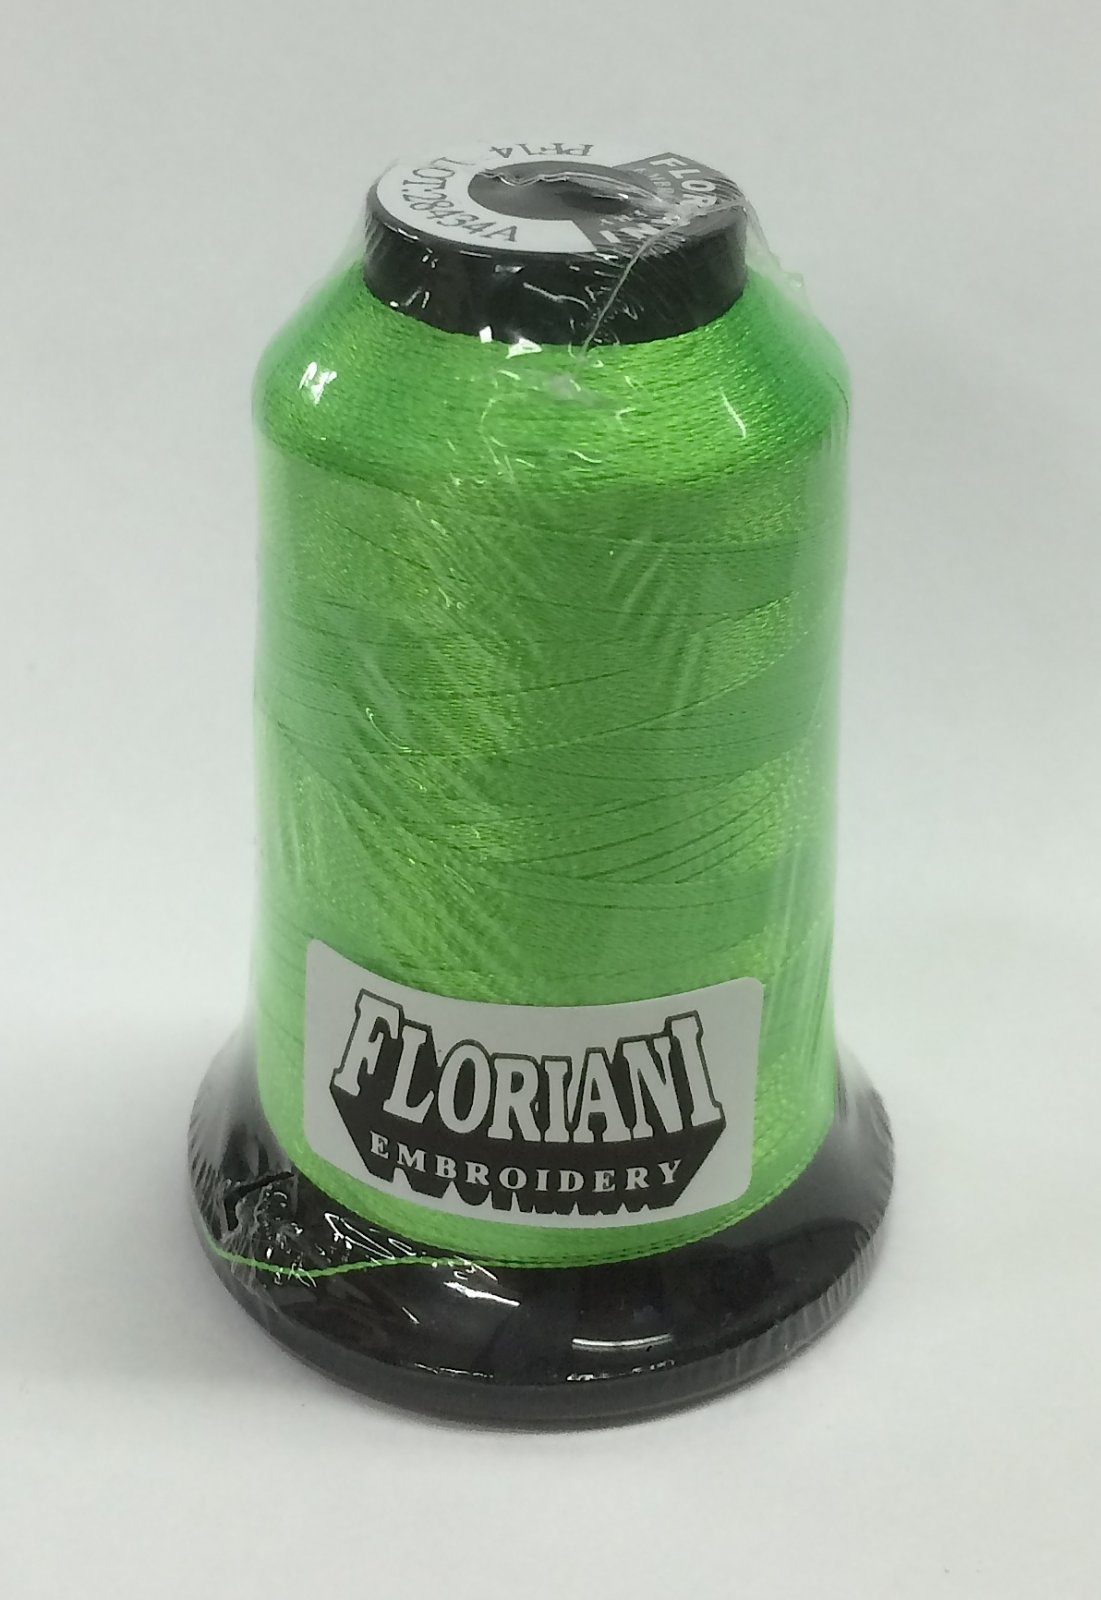 Floriani Embroidery Thread Color #0014